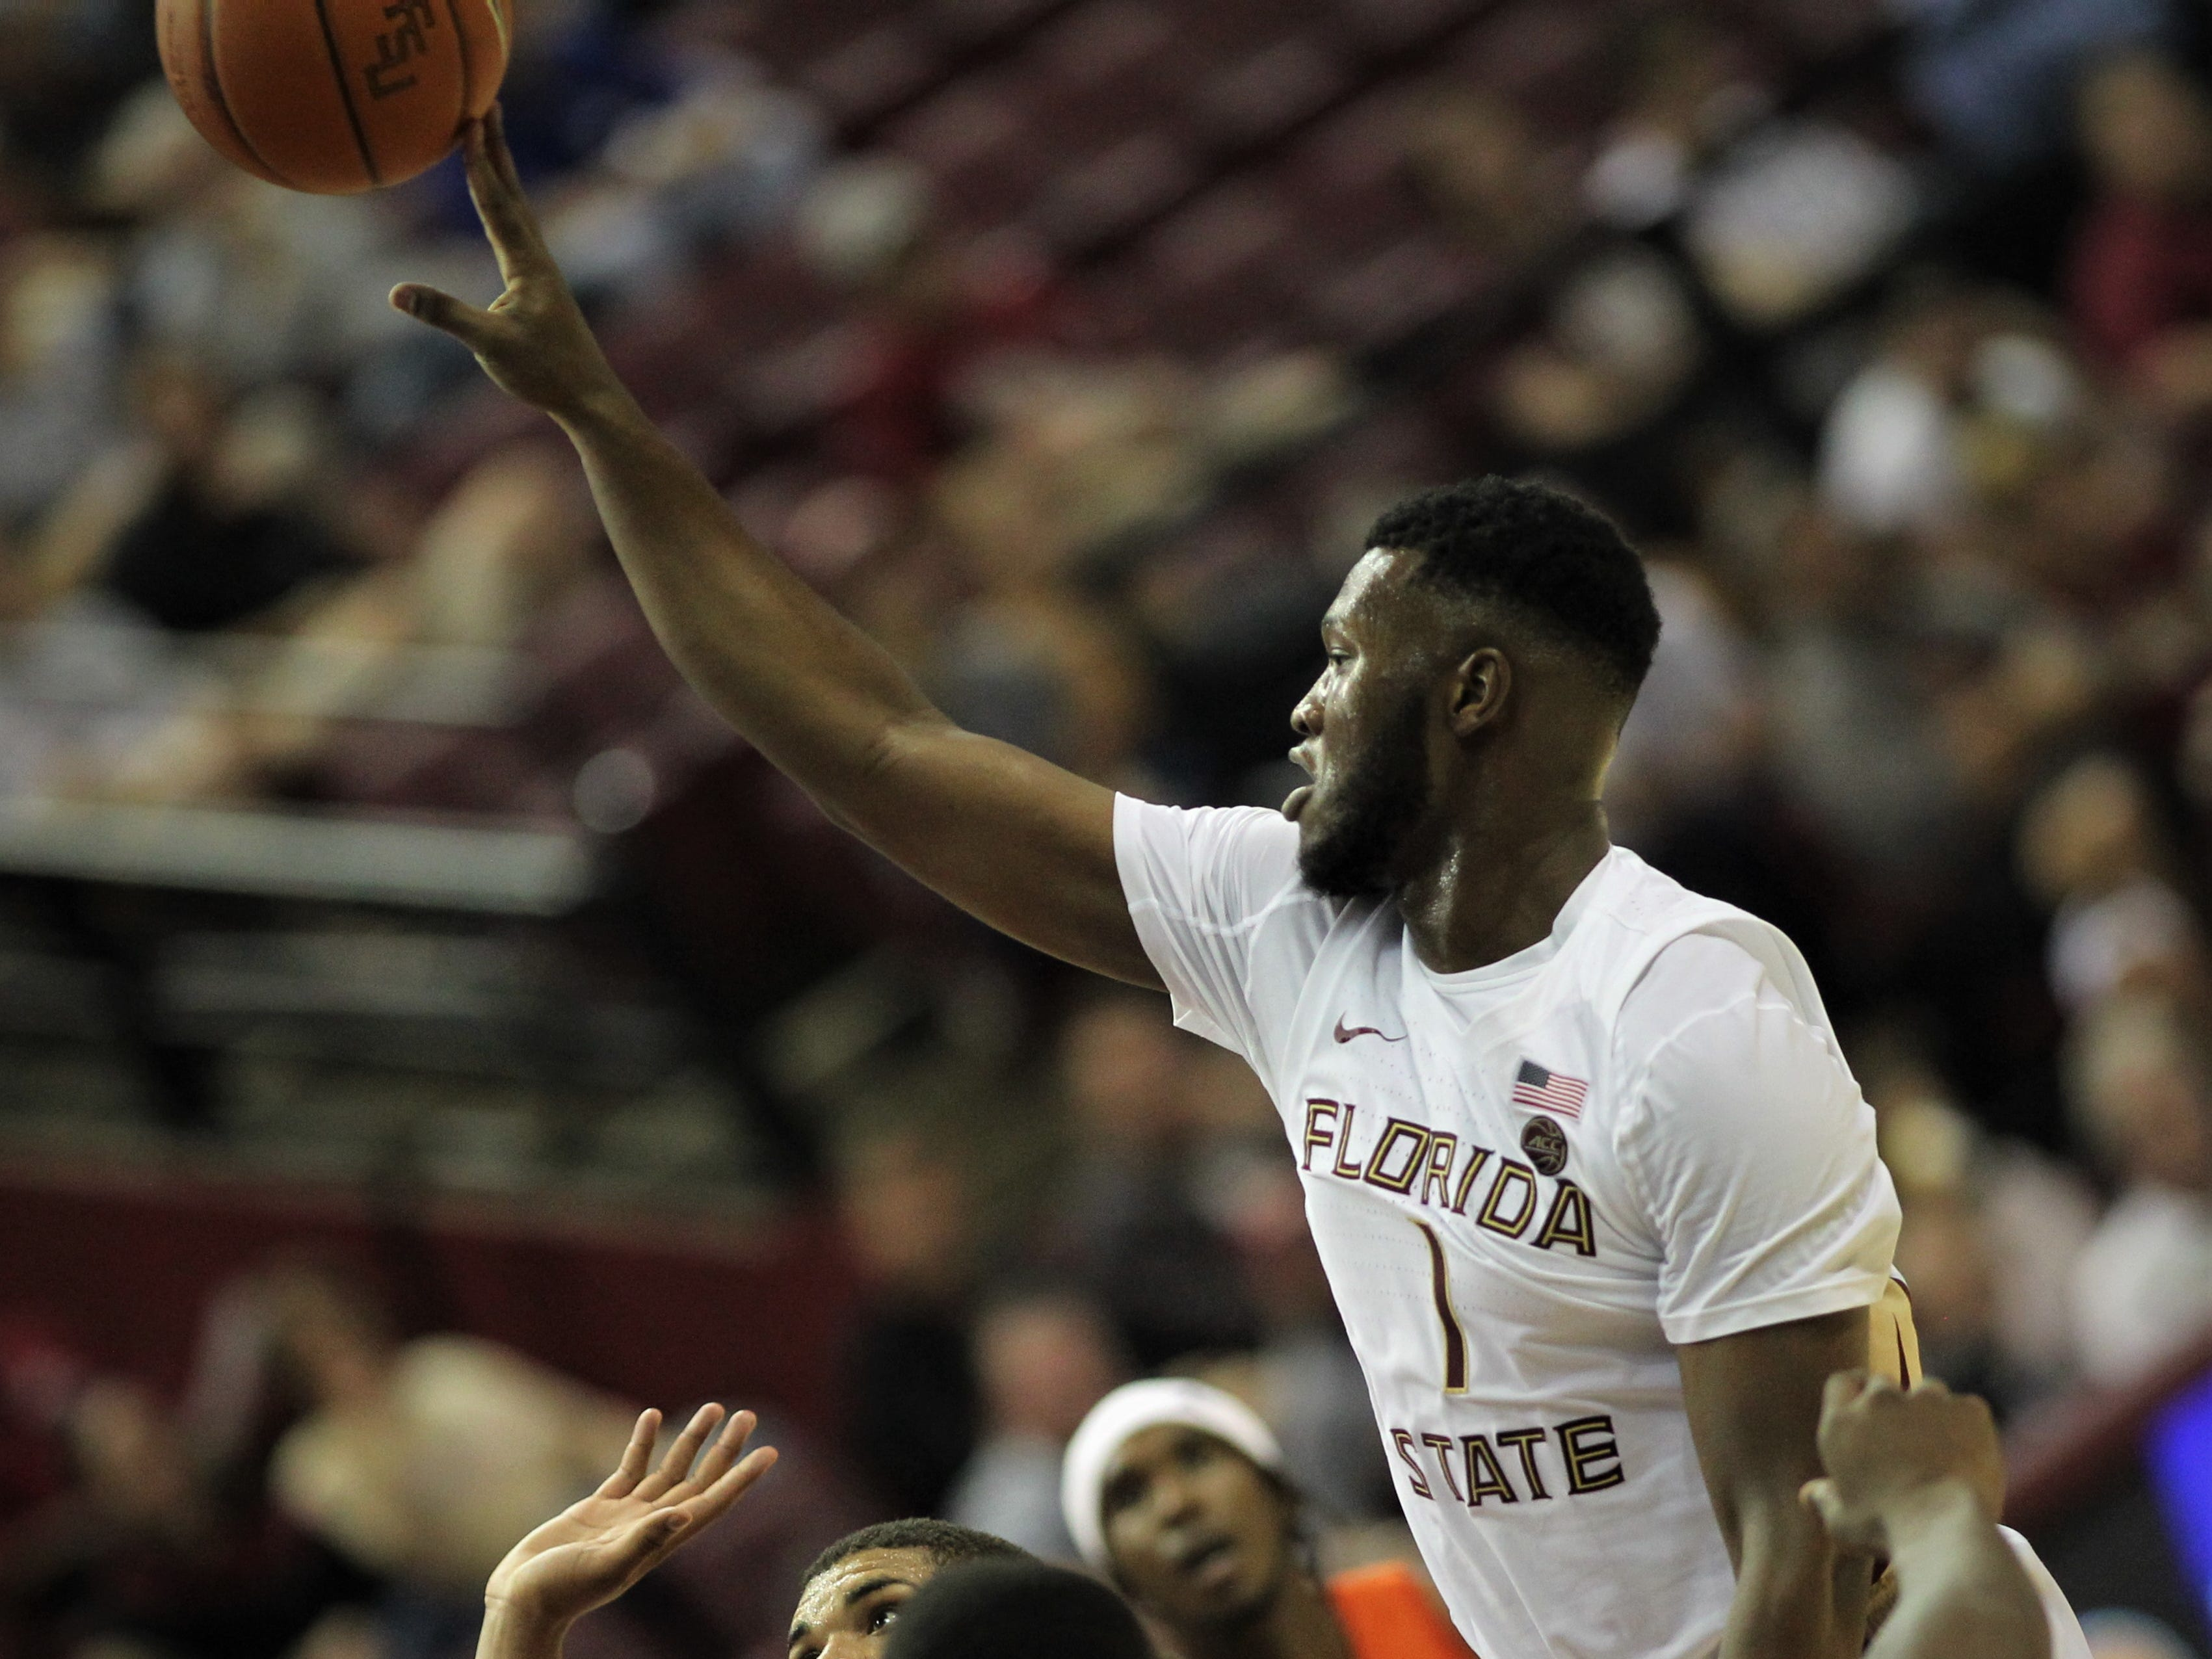 Florida State's Raiquan Gray goes up for a shot against Florida during the Sunshine Showdown game Tuesday at the Tucker Civic Center.